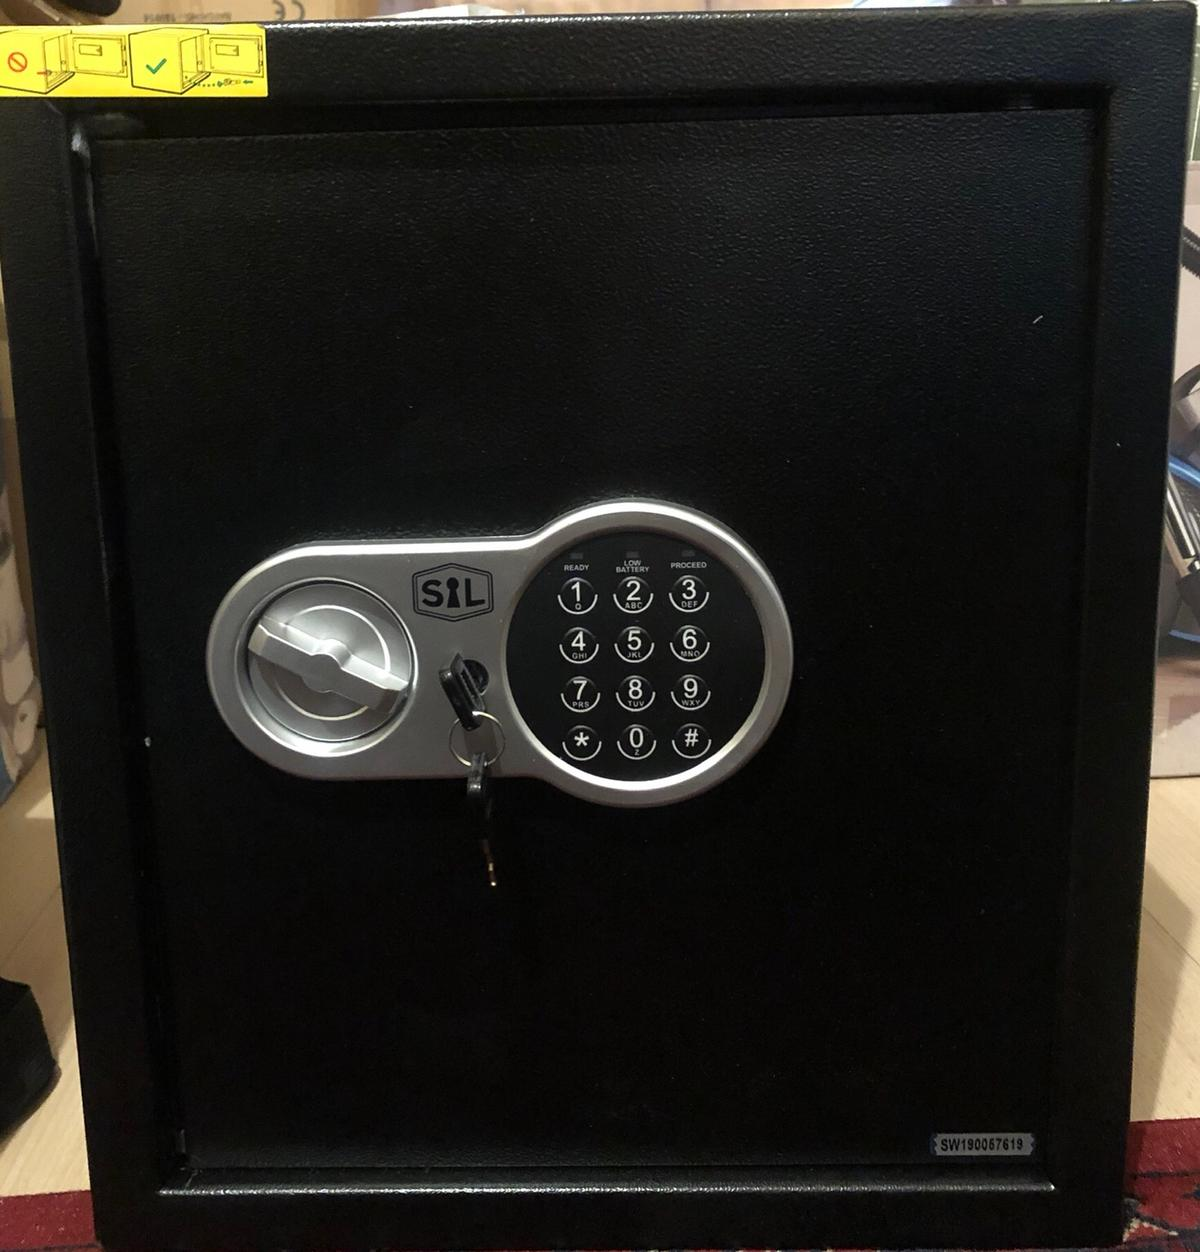 Brand New Digital Safe In Black With 2 Keys & Instructional Manual. 1 back top corner was bent because of wrong lifting. Showing in photos